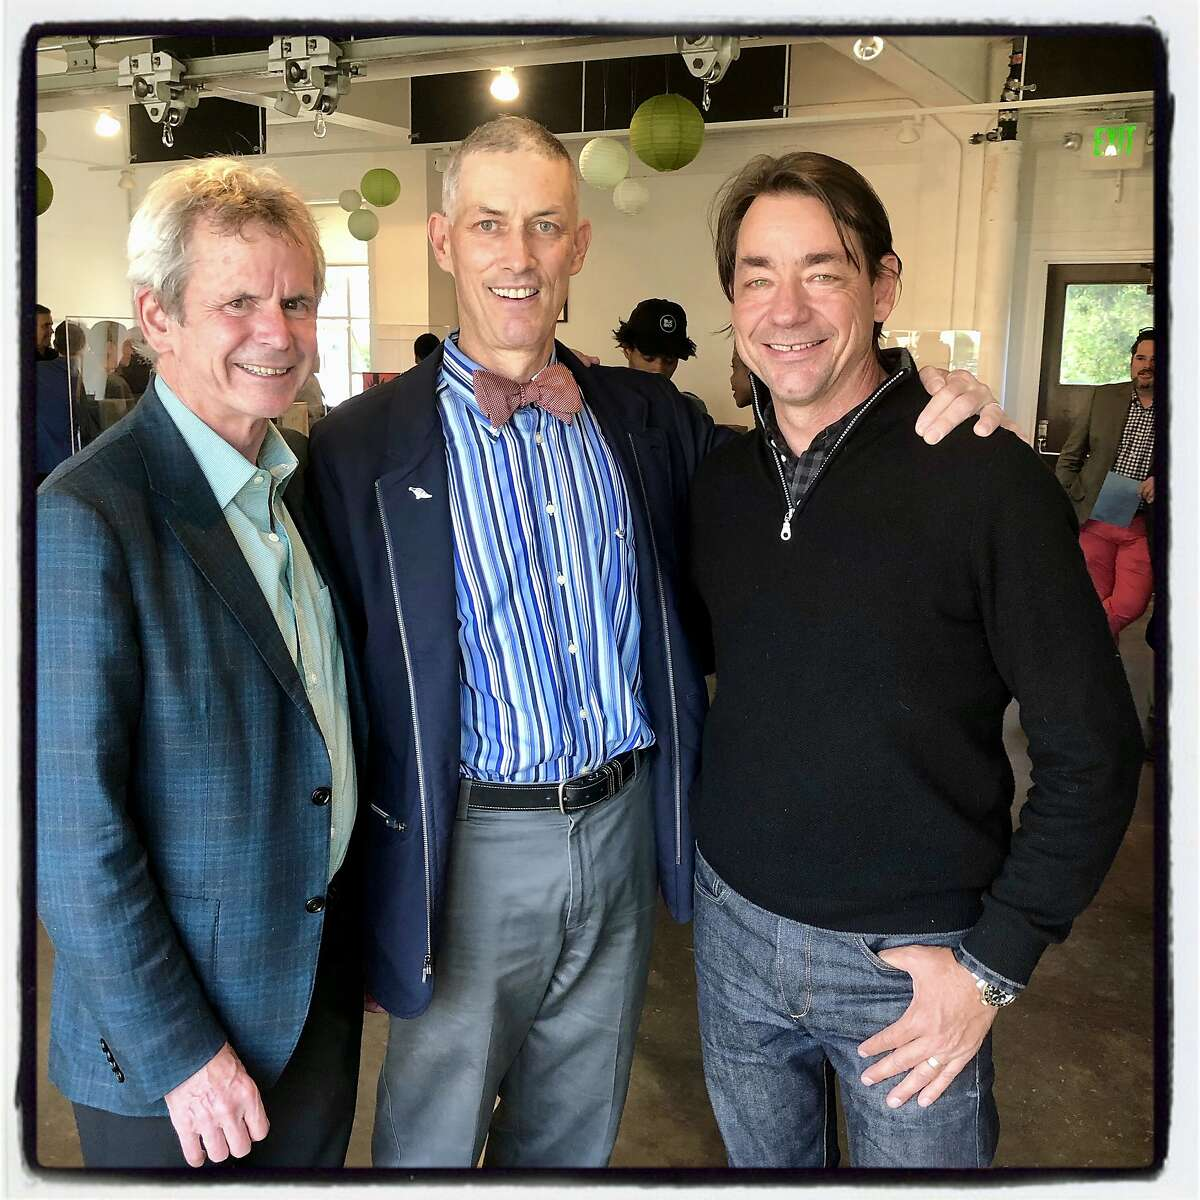 Arion Board Chairman Kevin King (center) with fellow trustees Philip Bowles (left) and Paul Wattis. May 23, 2019.